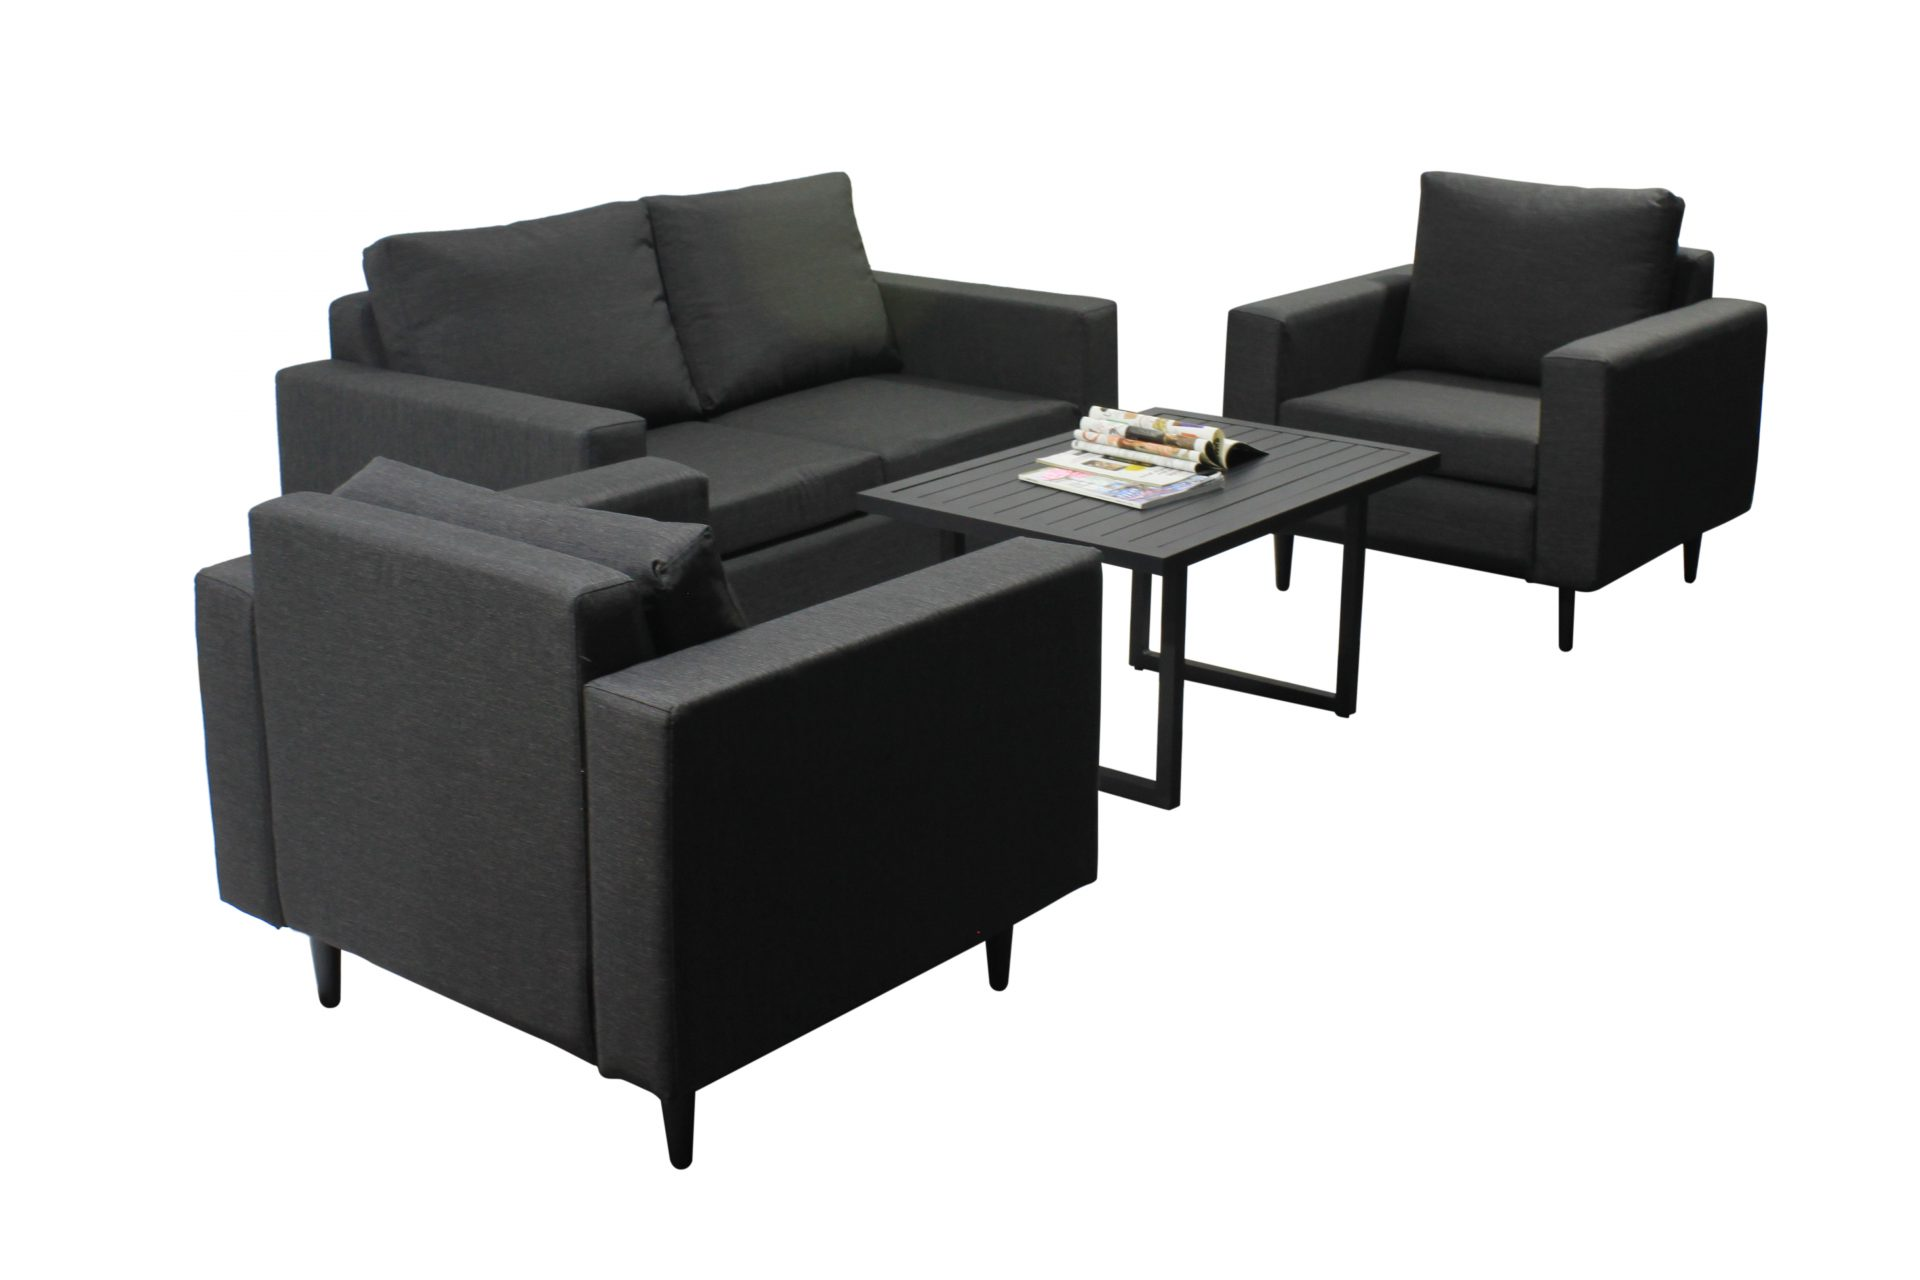 Outdoor Fabric Sofa Suite - All 4 Furnishings